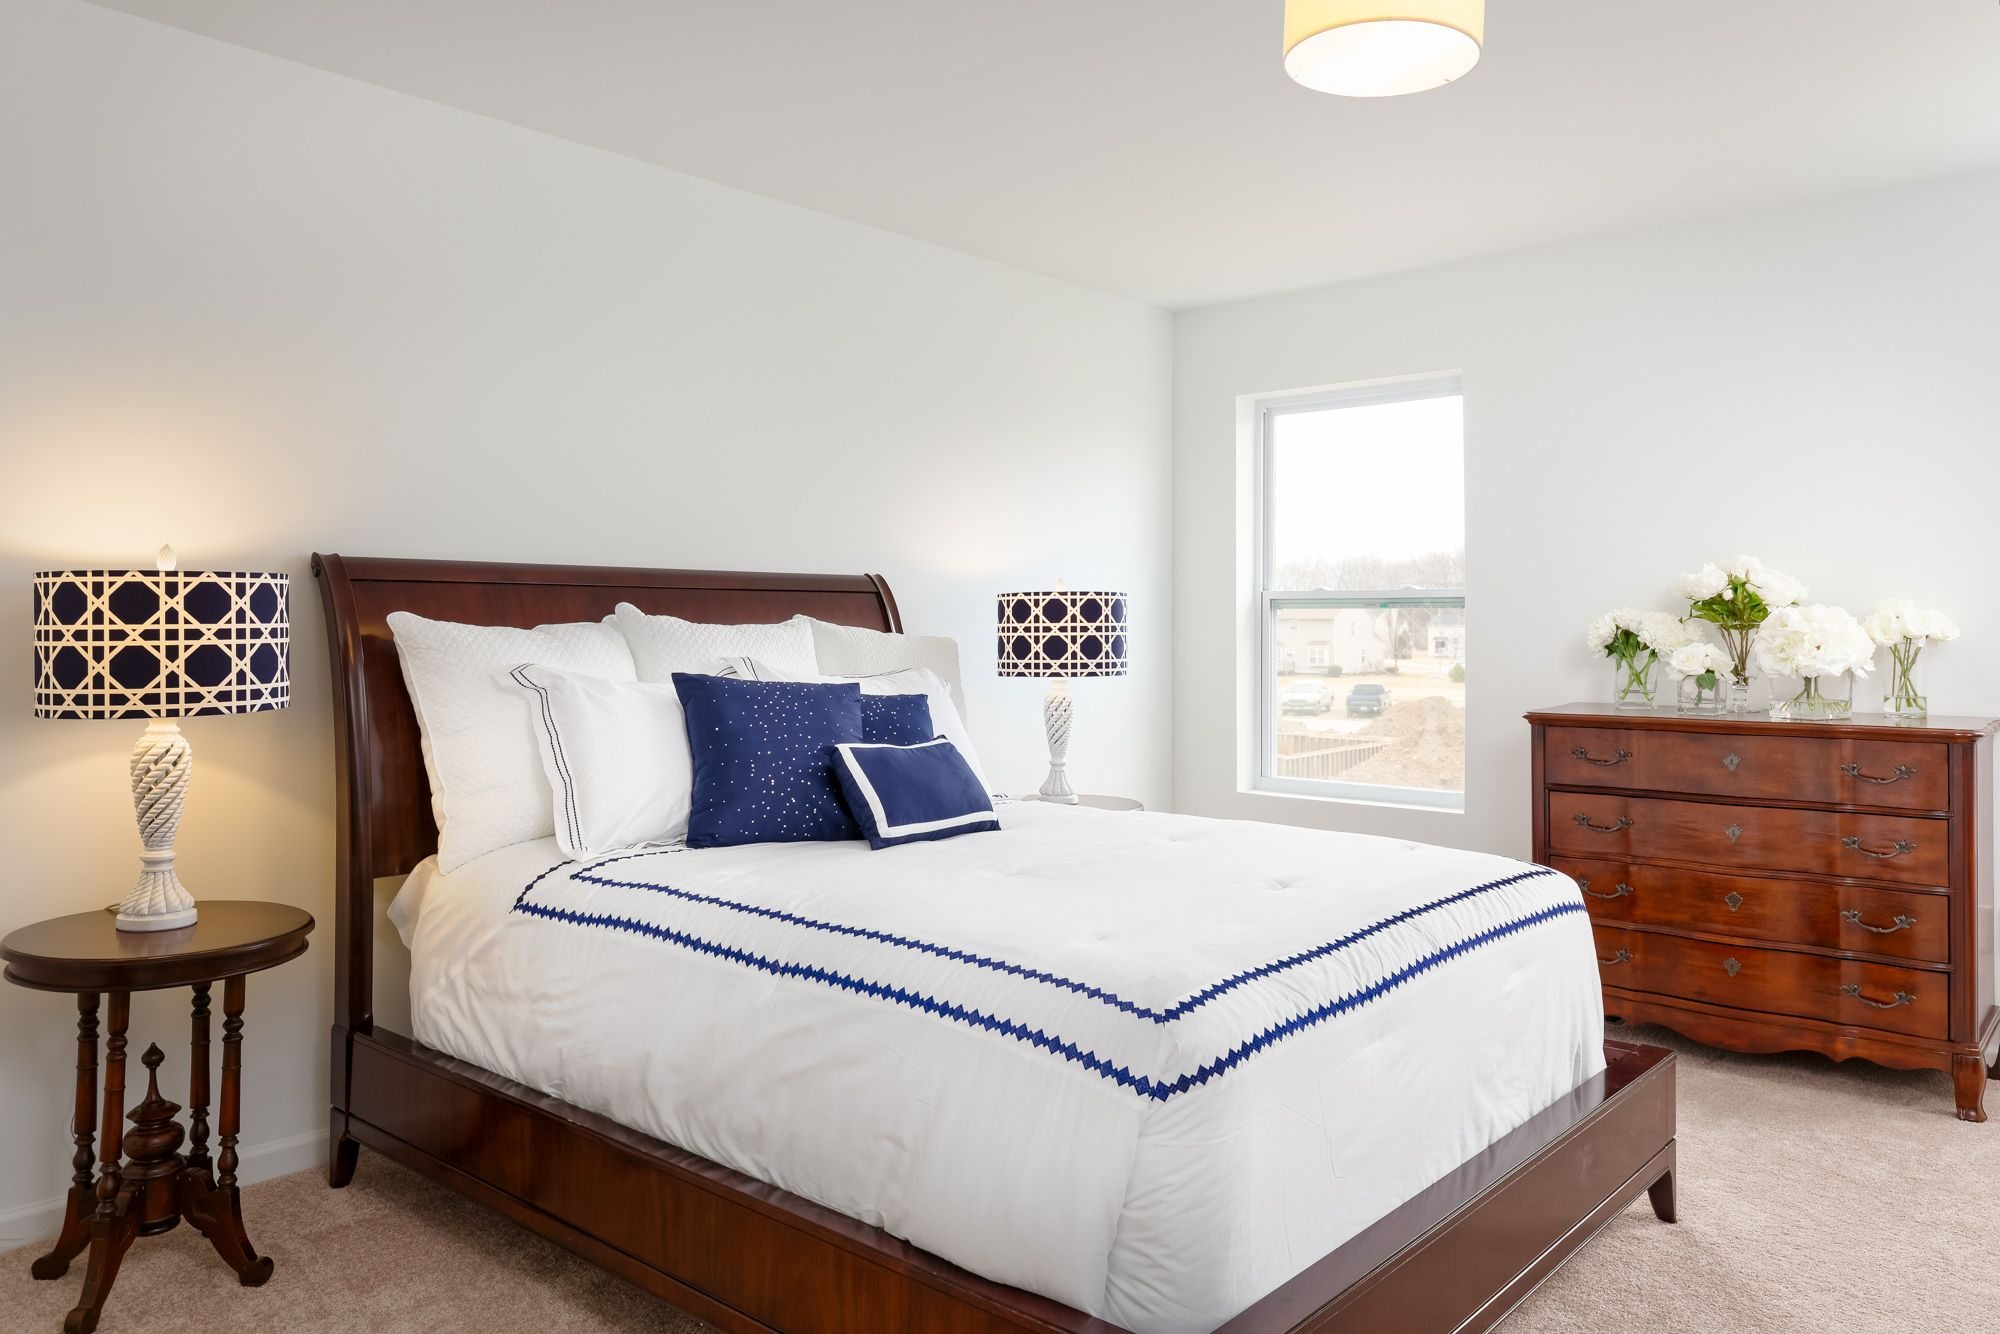 Bedroom featured in the Elements 2070 By Allen Edwin Homes in South Bend, IN